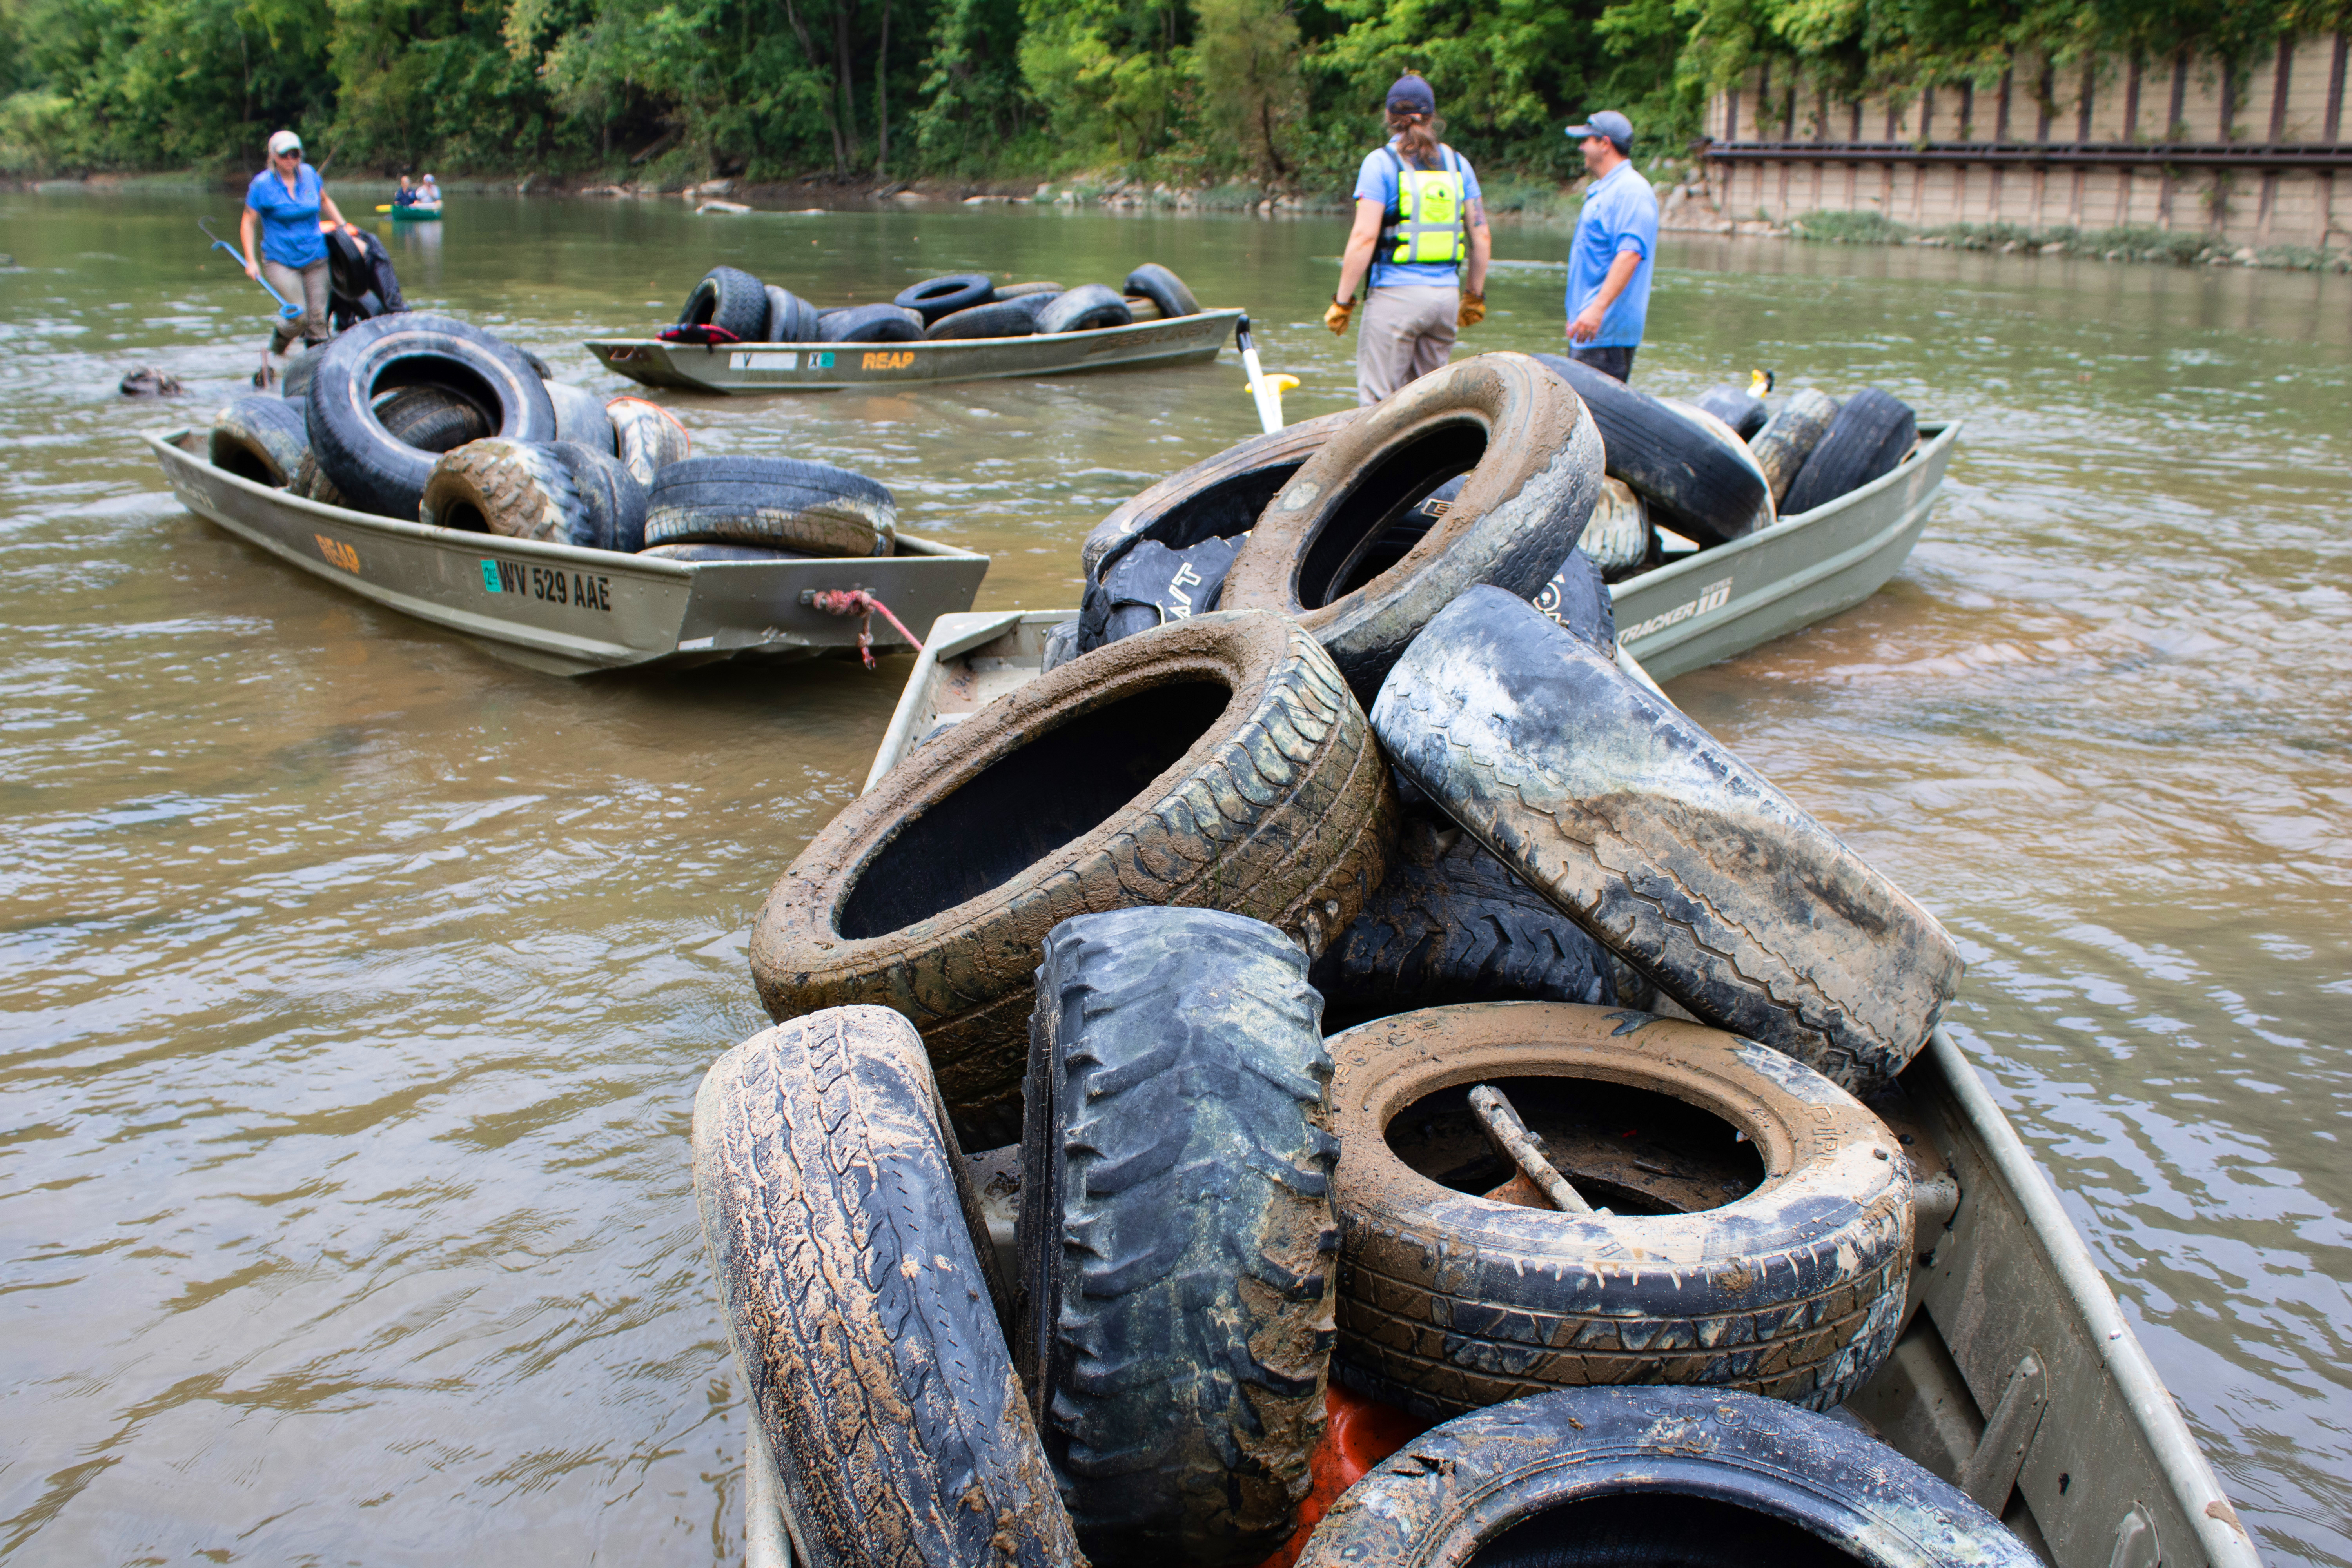 Division of Waste Management Joins Multi-state Effort to Remove Tires from the Tug Fork River